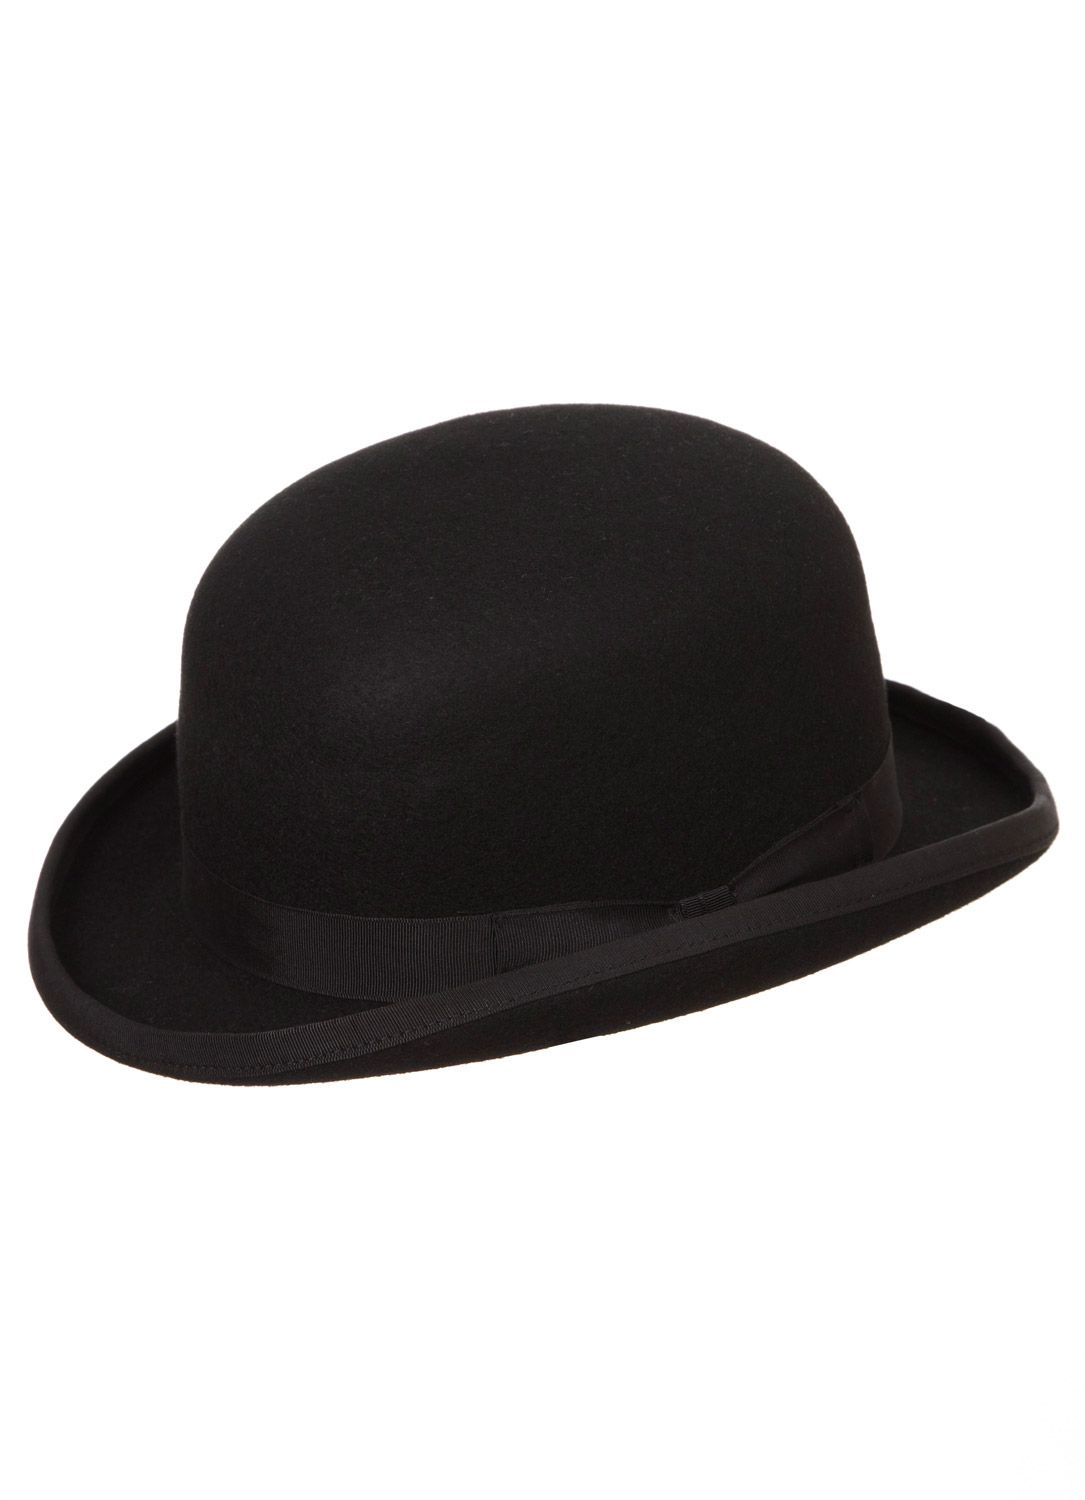 Black Bowler Hat By Austin Reed